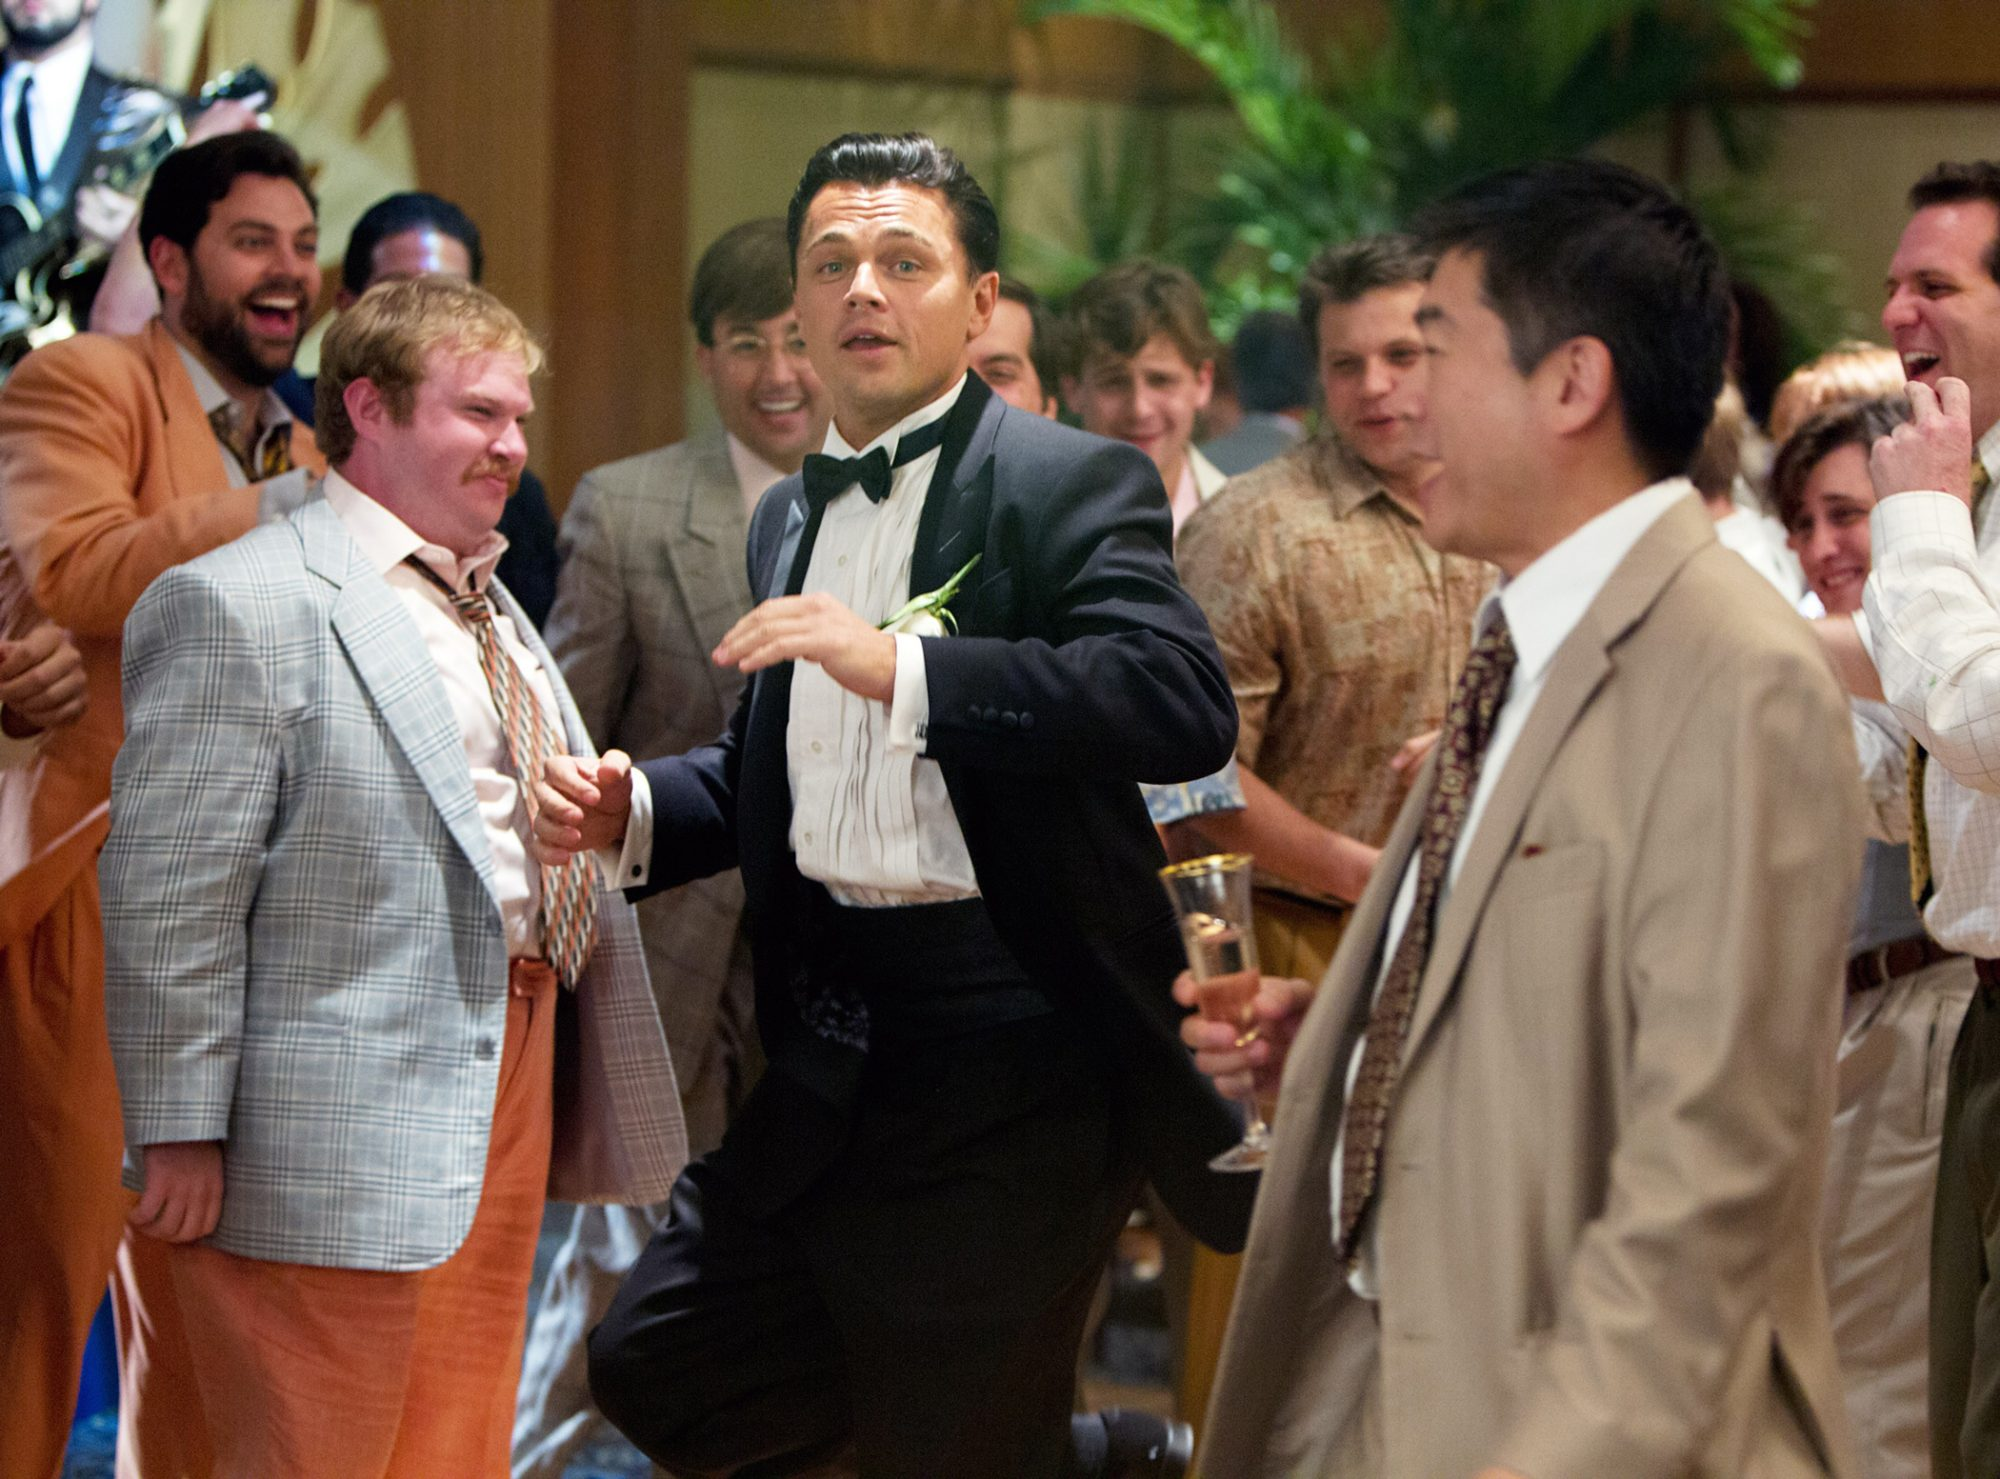 <p>He charmed us with his moves in <em>Wolf of Wall Street.</em></p>